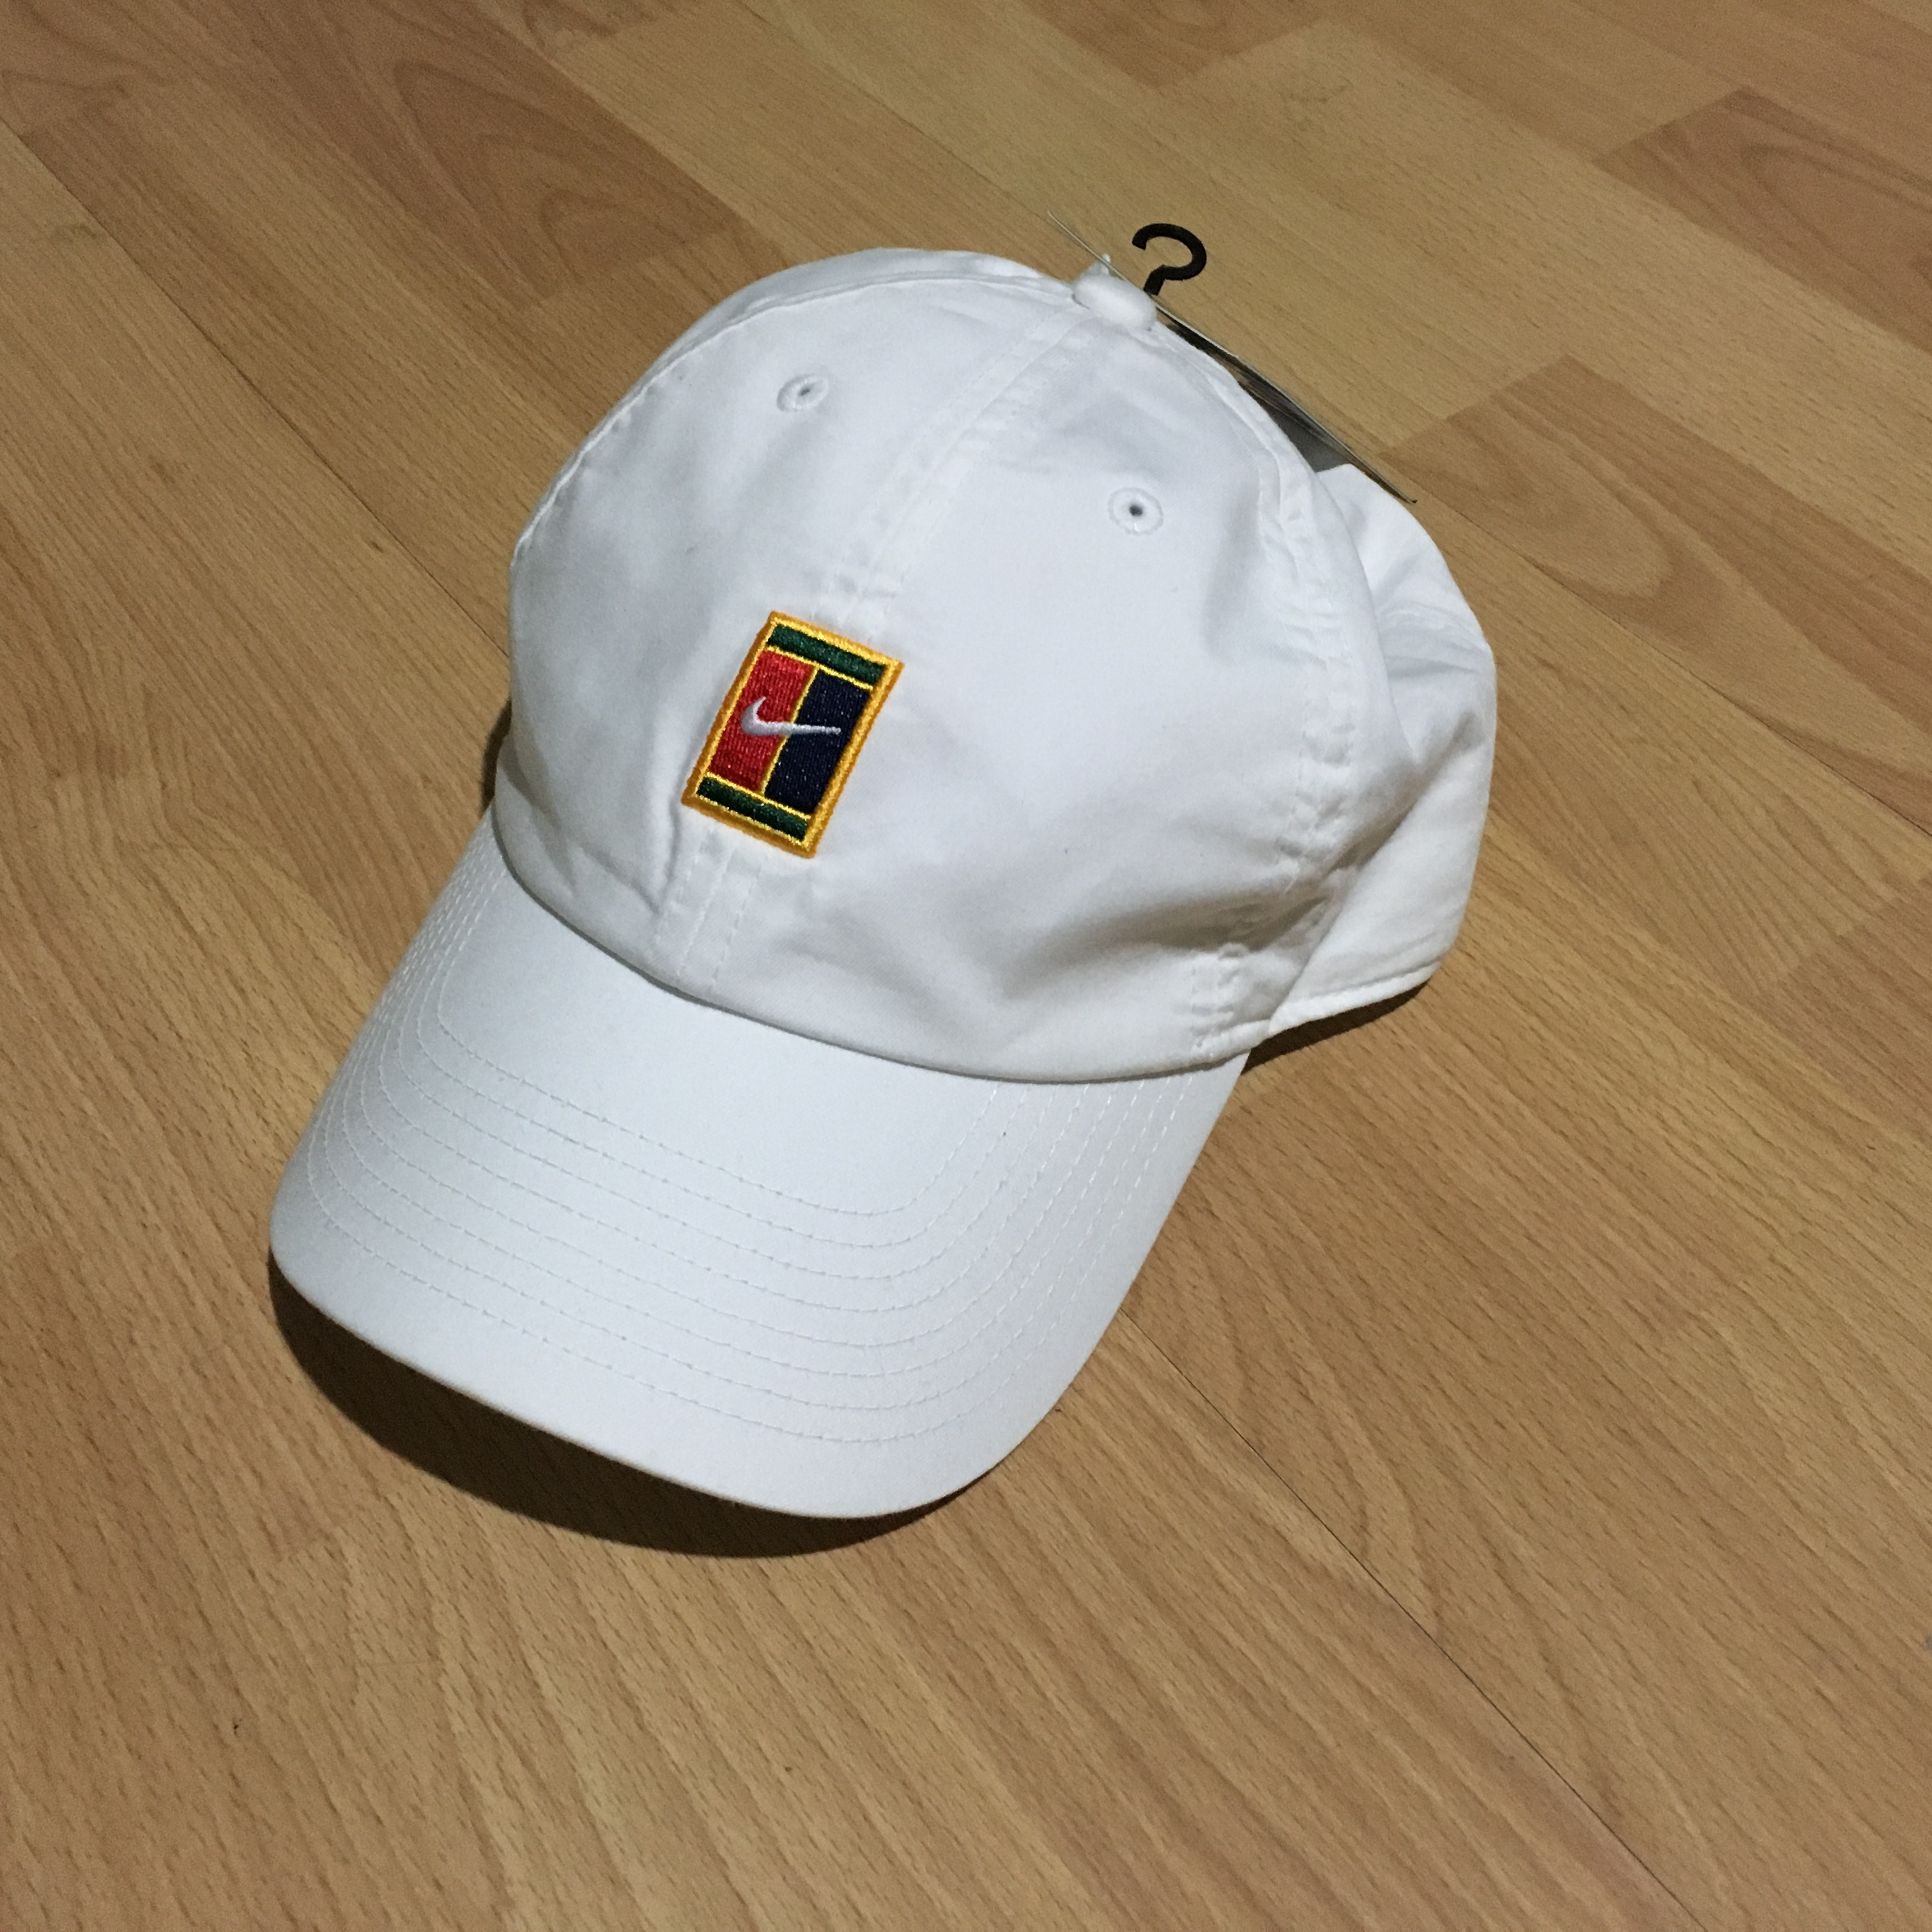 b4bebbe907118 Nike Nike Court Heritage 86 Hat Size one size - Hats for Sale - Grailed